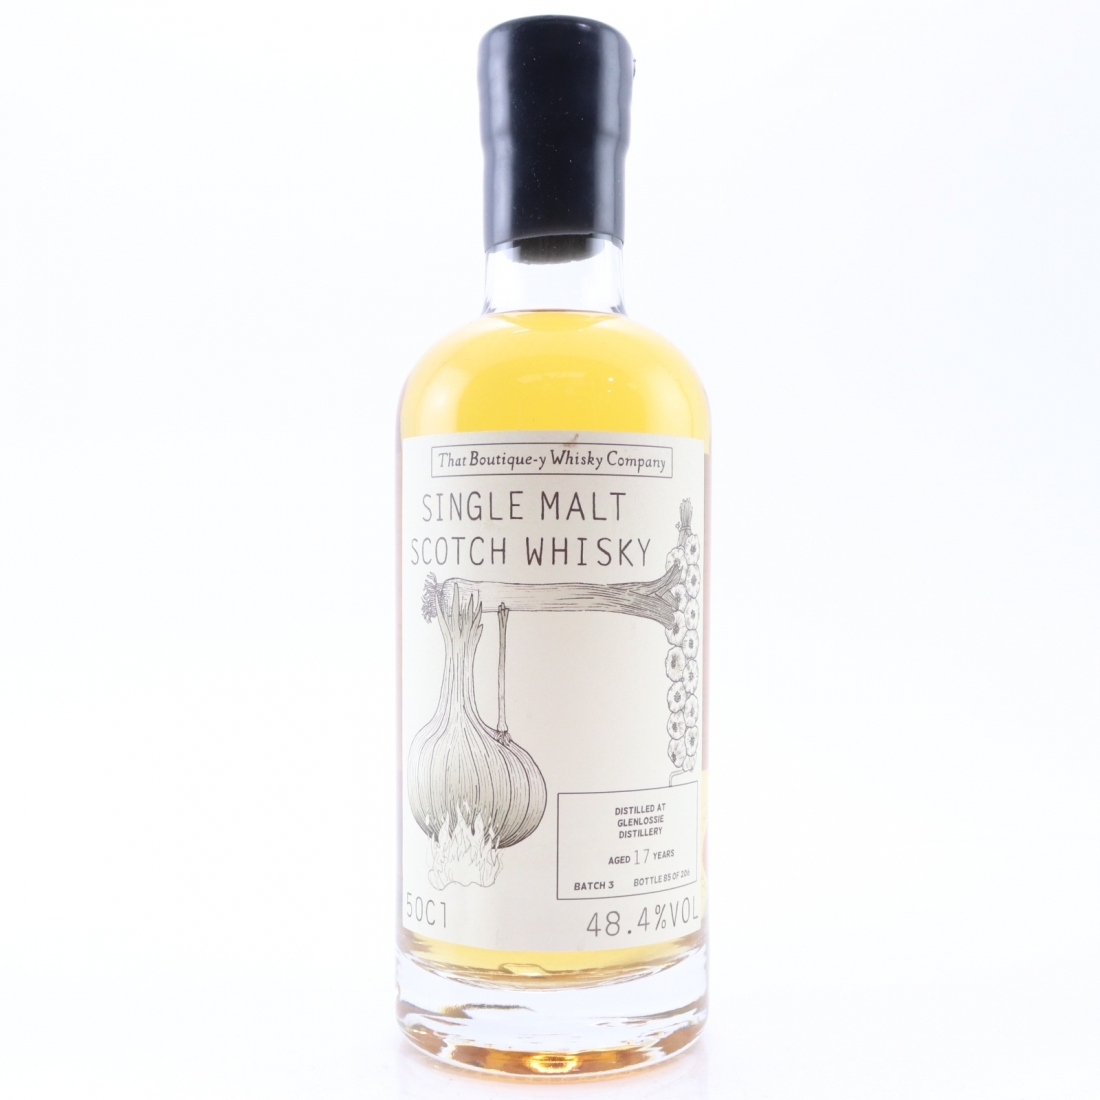 Glenlossie 10 Year Old That Boutique-y Whisky Company Batch #3